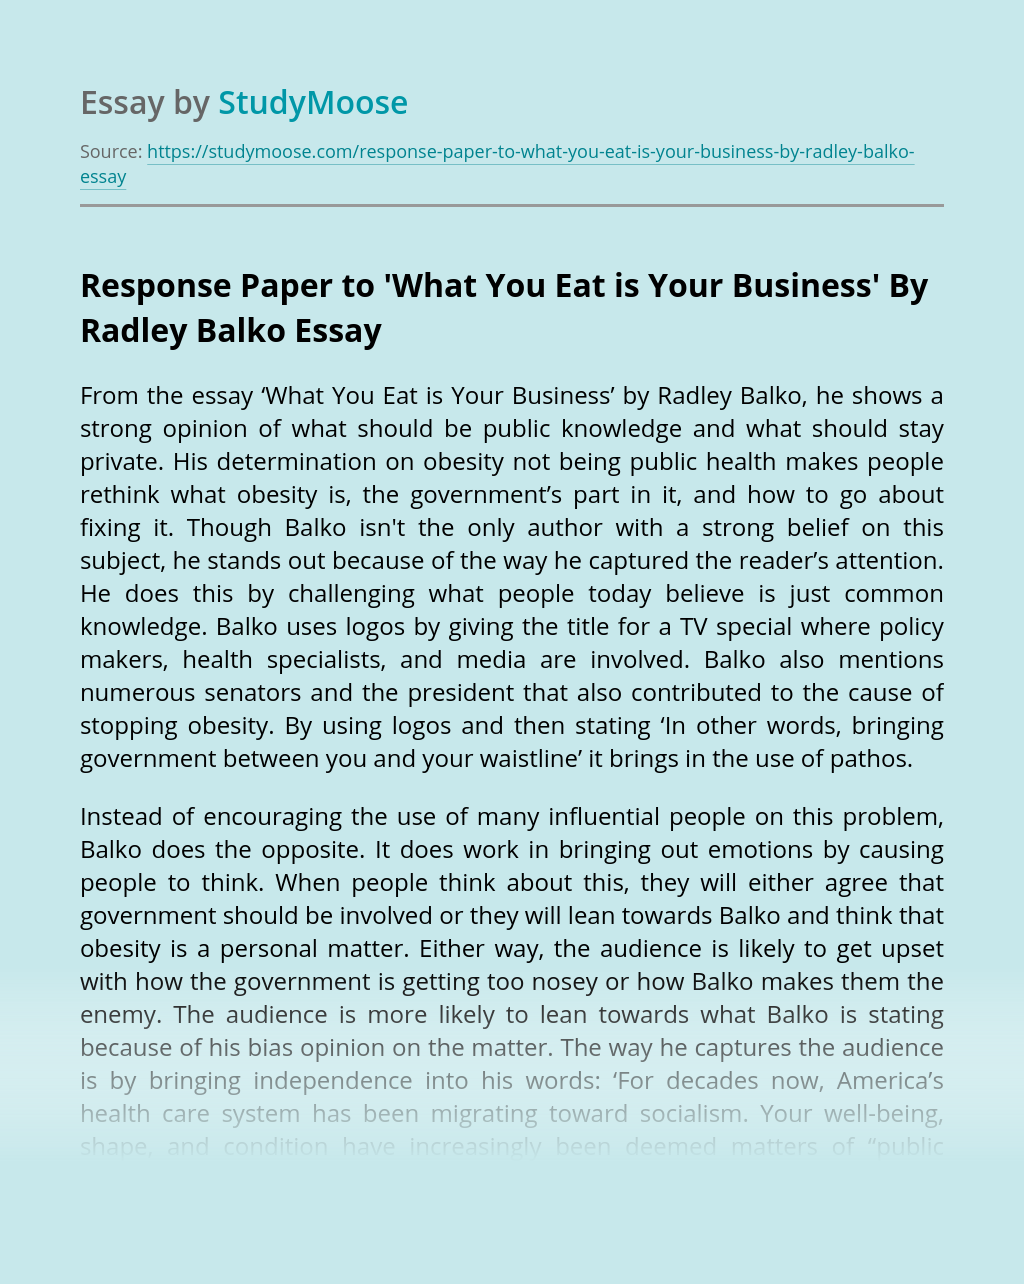 Response Paper to 'What You Eat is Your Business' By Radley Balko